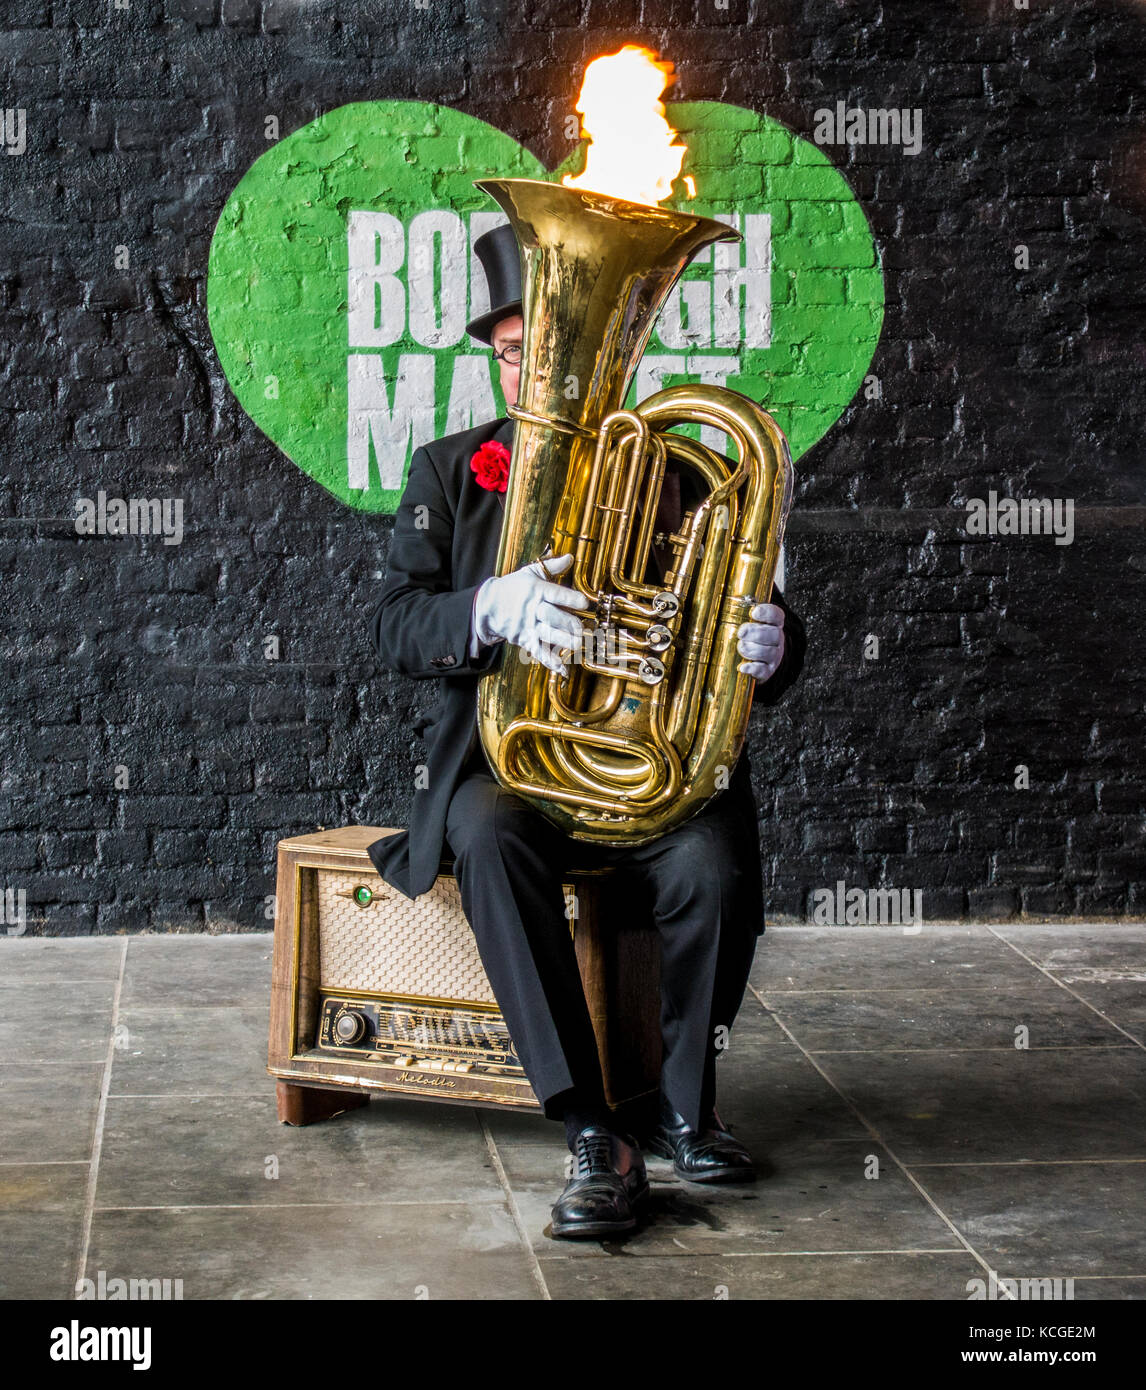 Man entertainer in a suit and top hat, sitting on an old gramophone, playing a tuba with a flame from the top. Borough - Stock Image